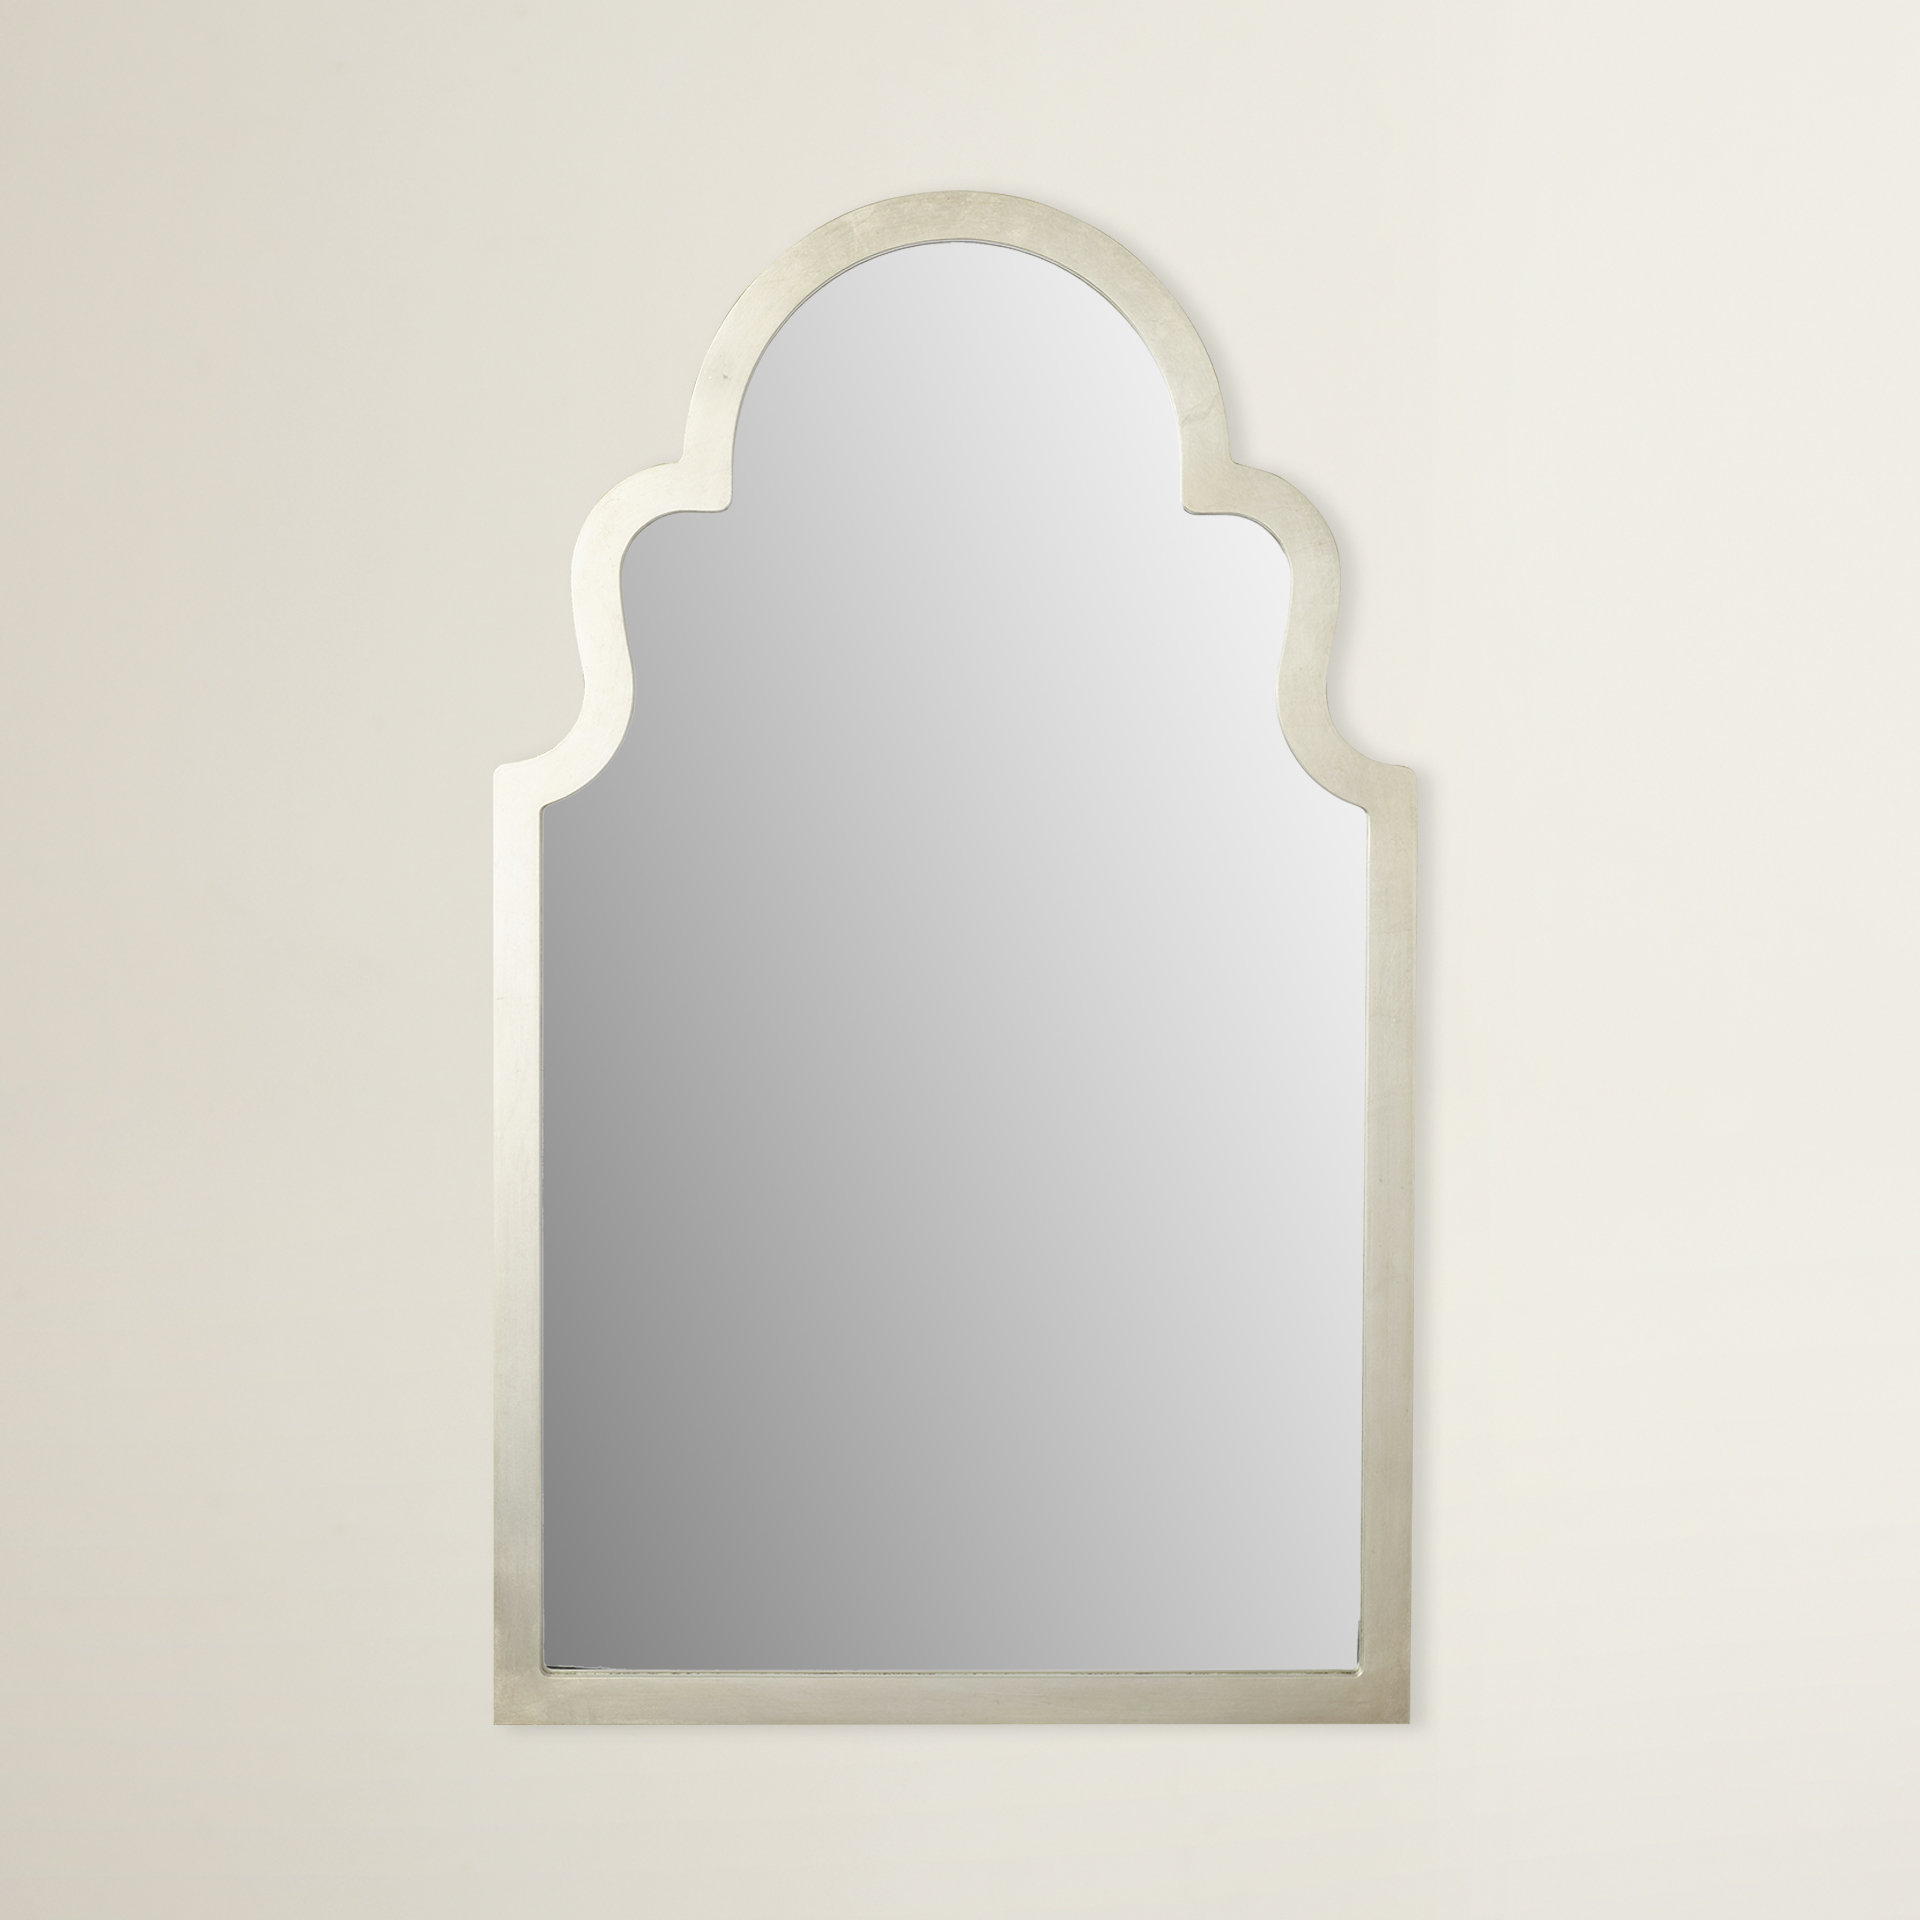 Arch Top Vertical Wall Mirror For Arch Top Vertical Wall Mirrors (Image 4 of 20)